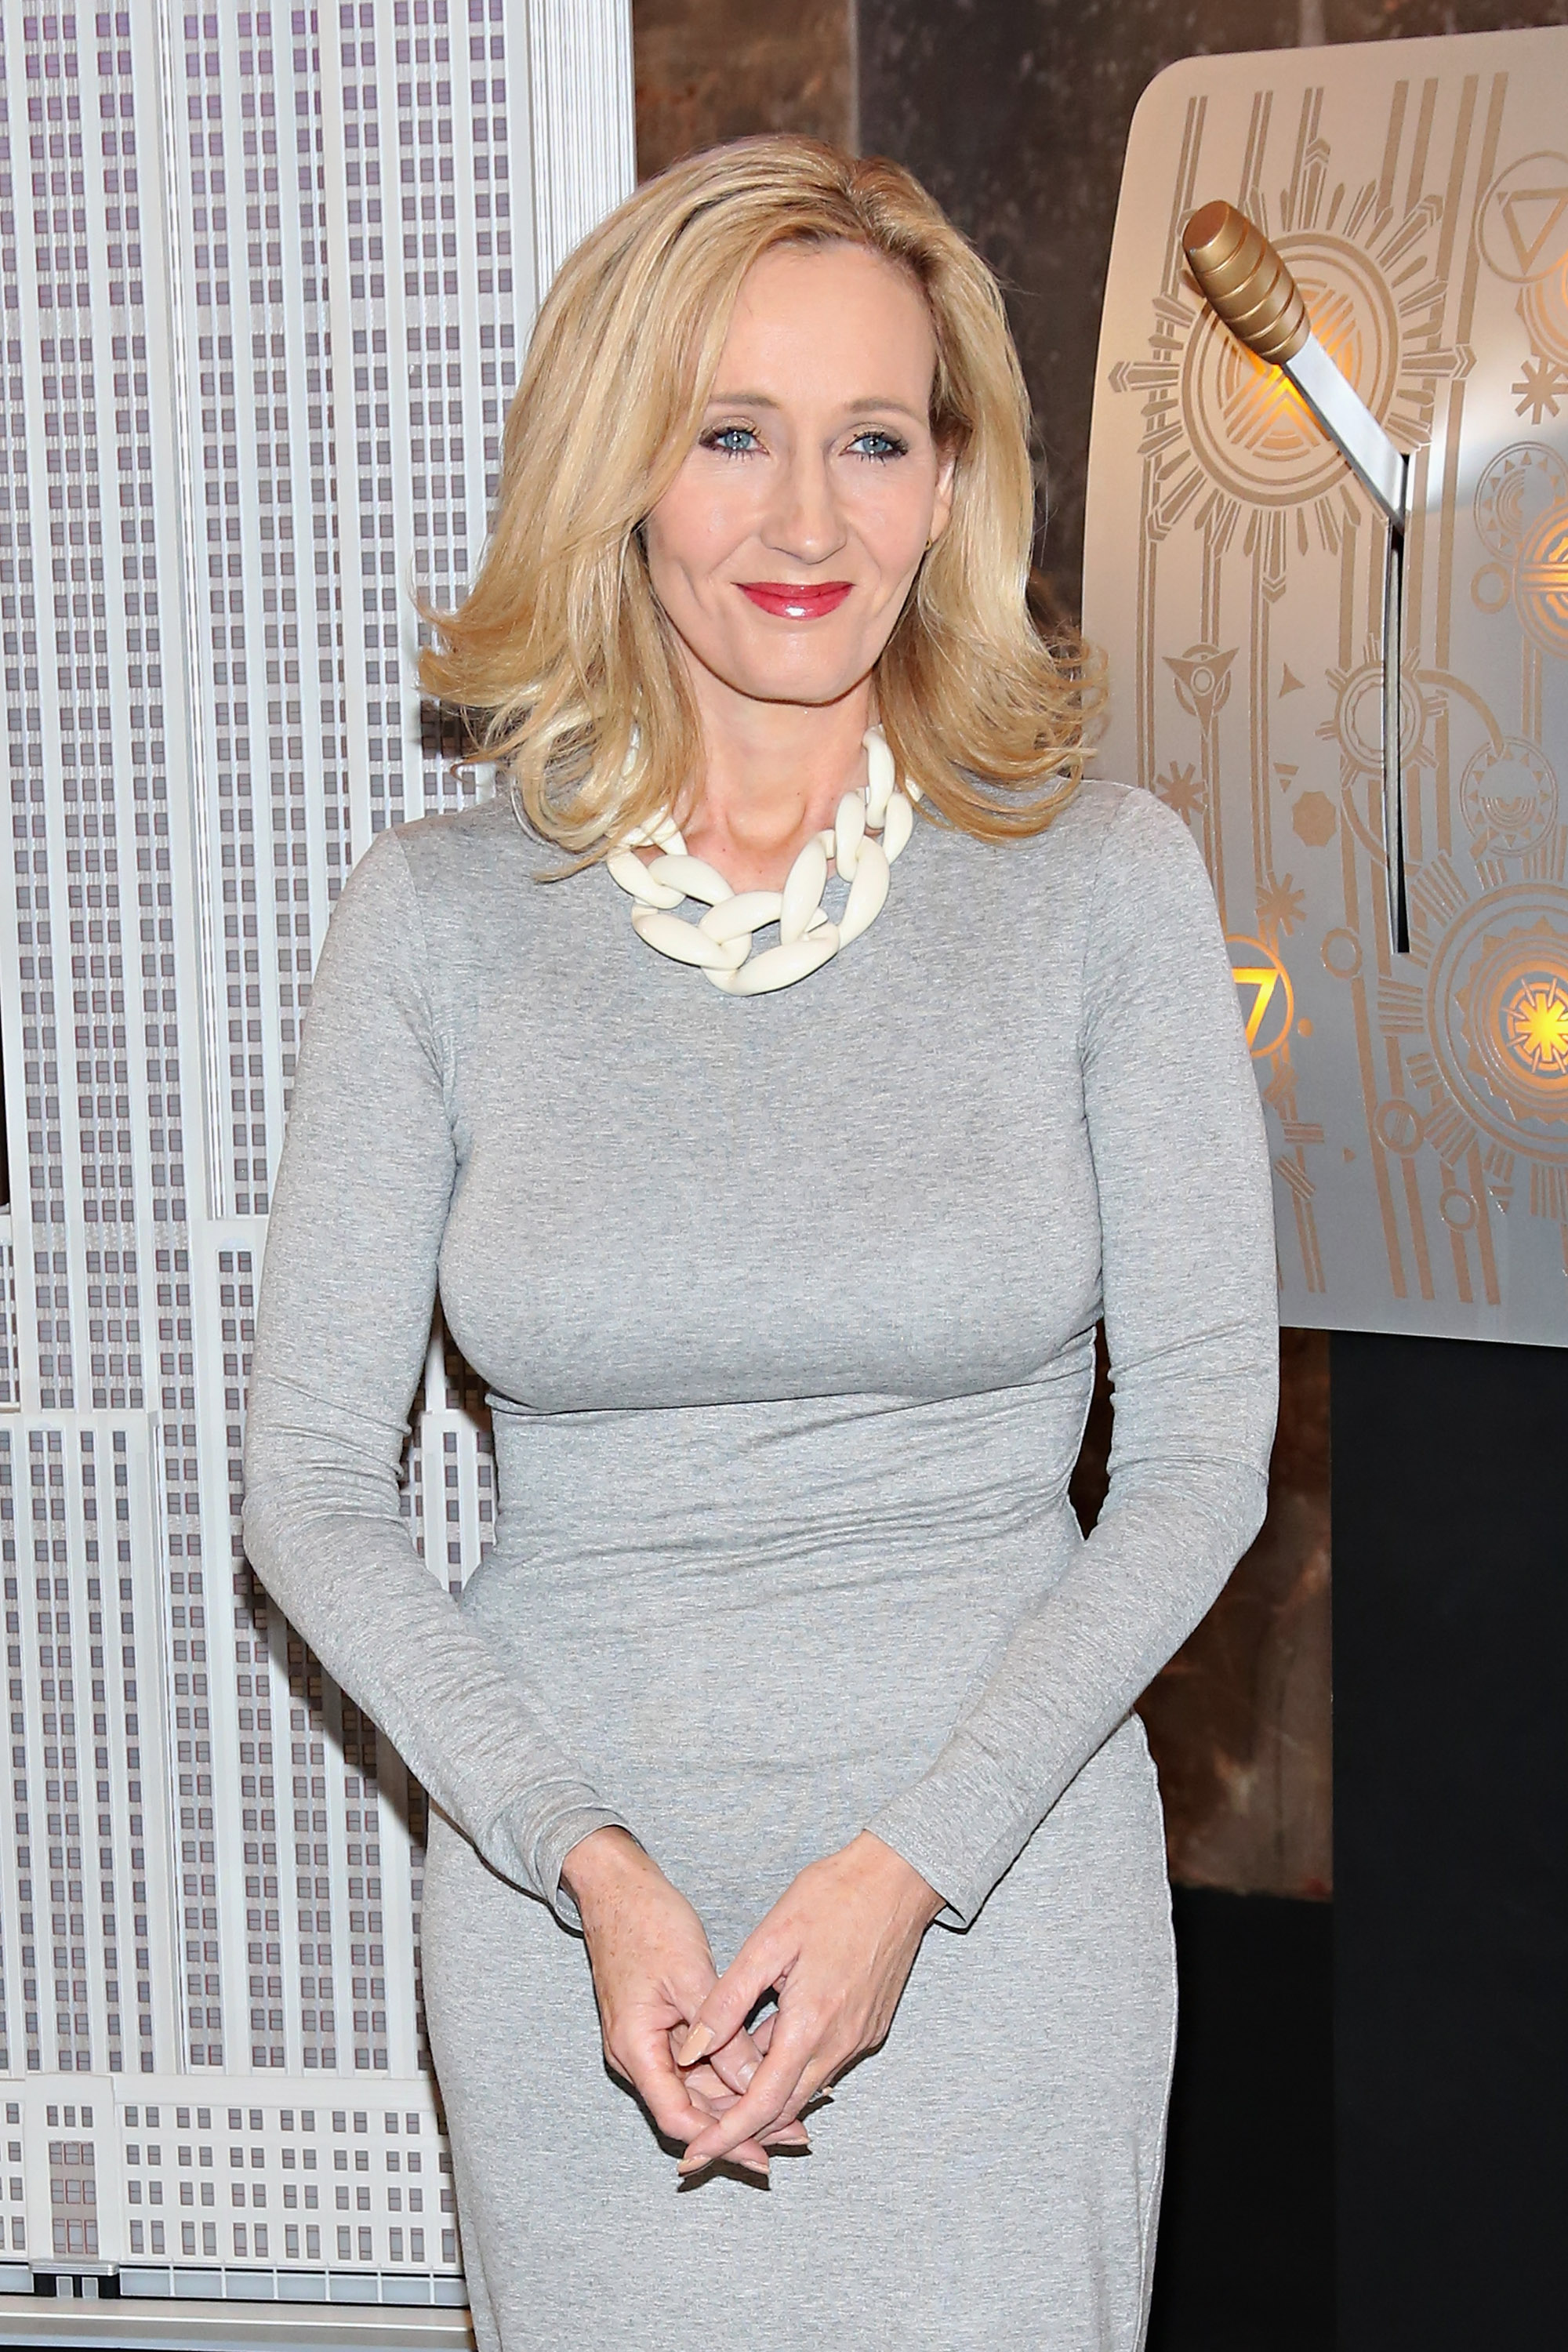 Founder and President of Lumos and Patron of Lumos USA/ Author J.K. Rowling ceremoniously lights the Empire State Building in LumosÕ colors of purple, blue and white to mark the US launch of her non-profit organization at The Empire State Building in New York City, on April 9, 2015.